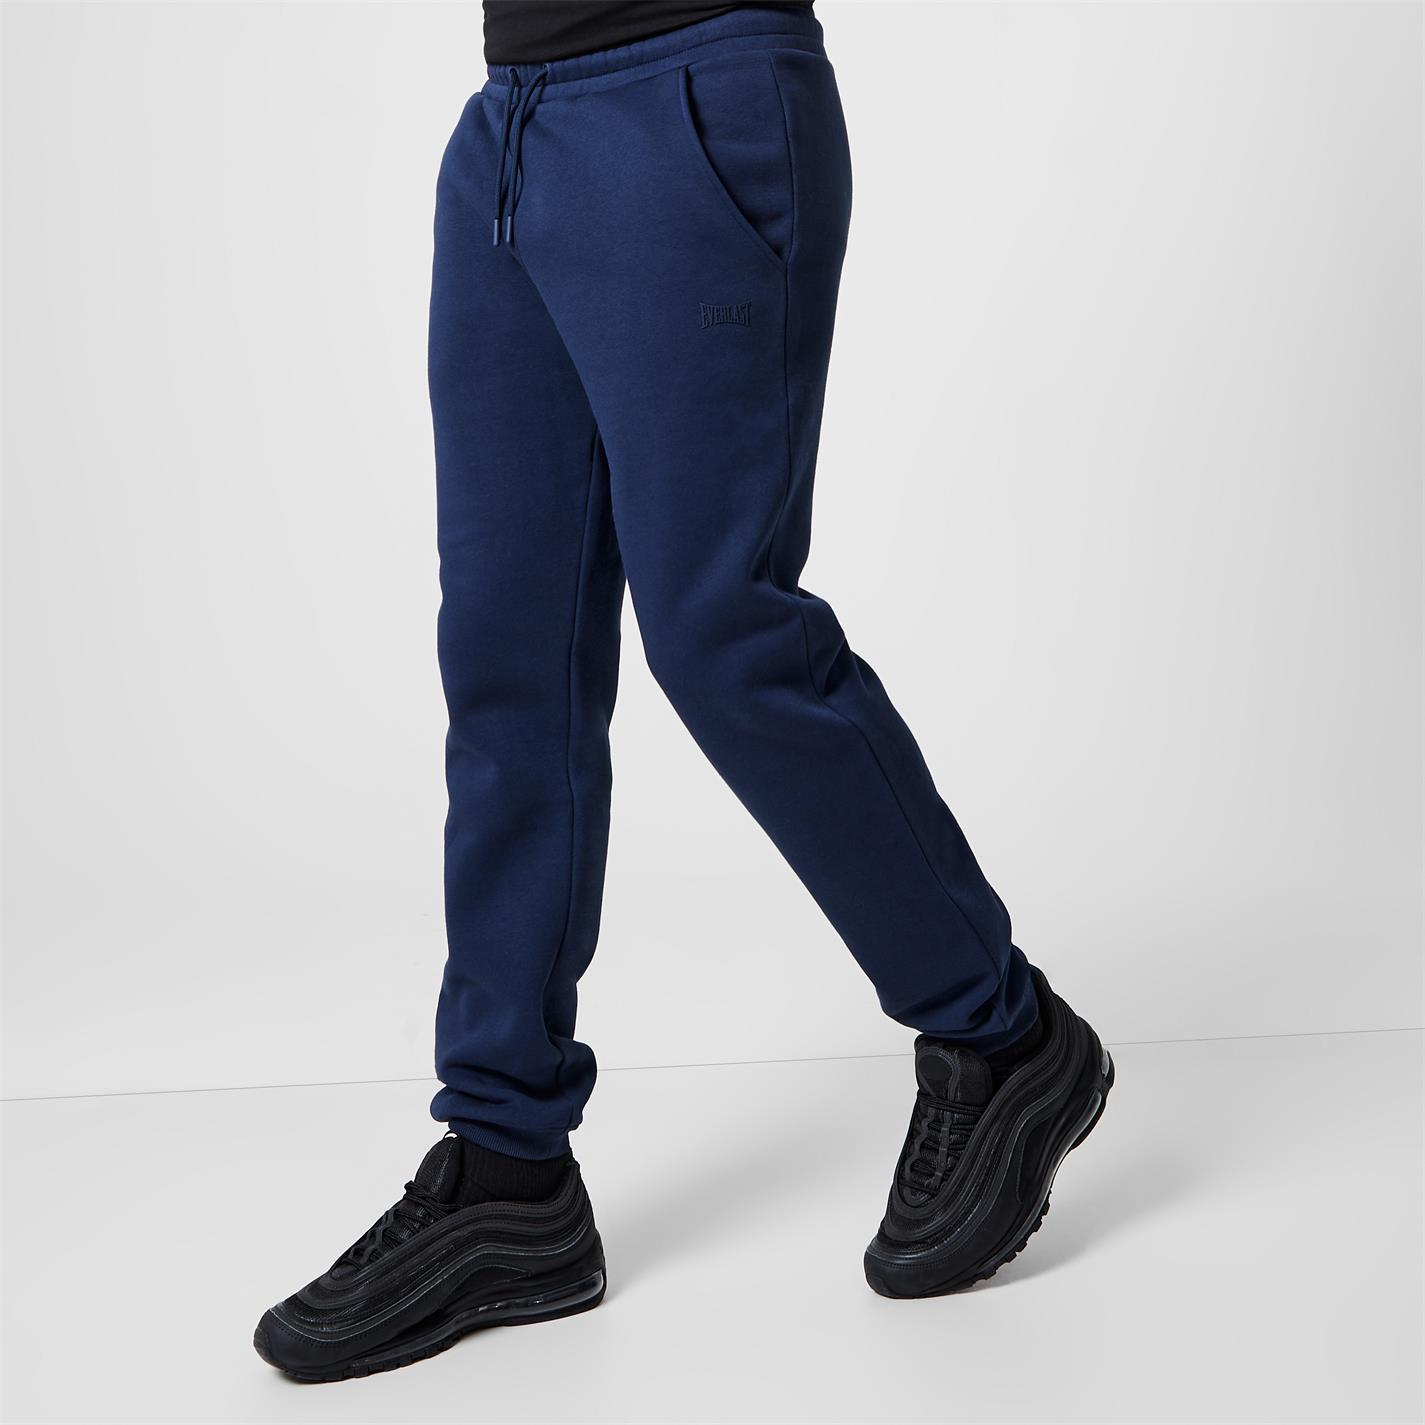 Everlast Jogging Bottoms Mens Navy